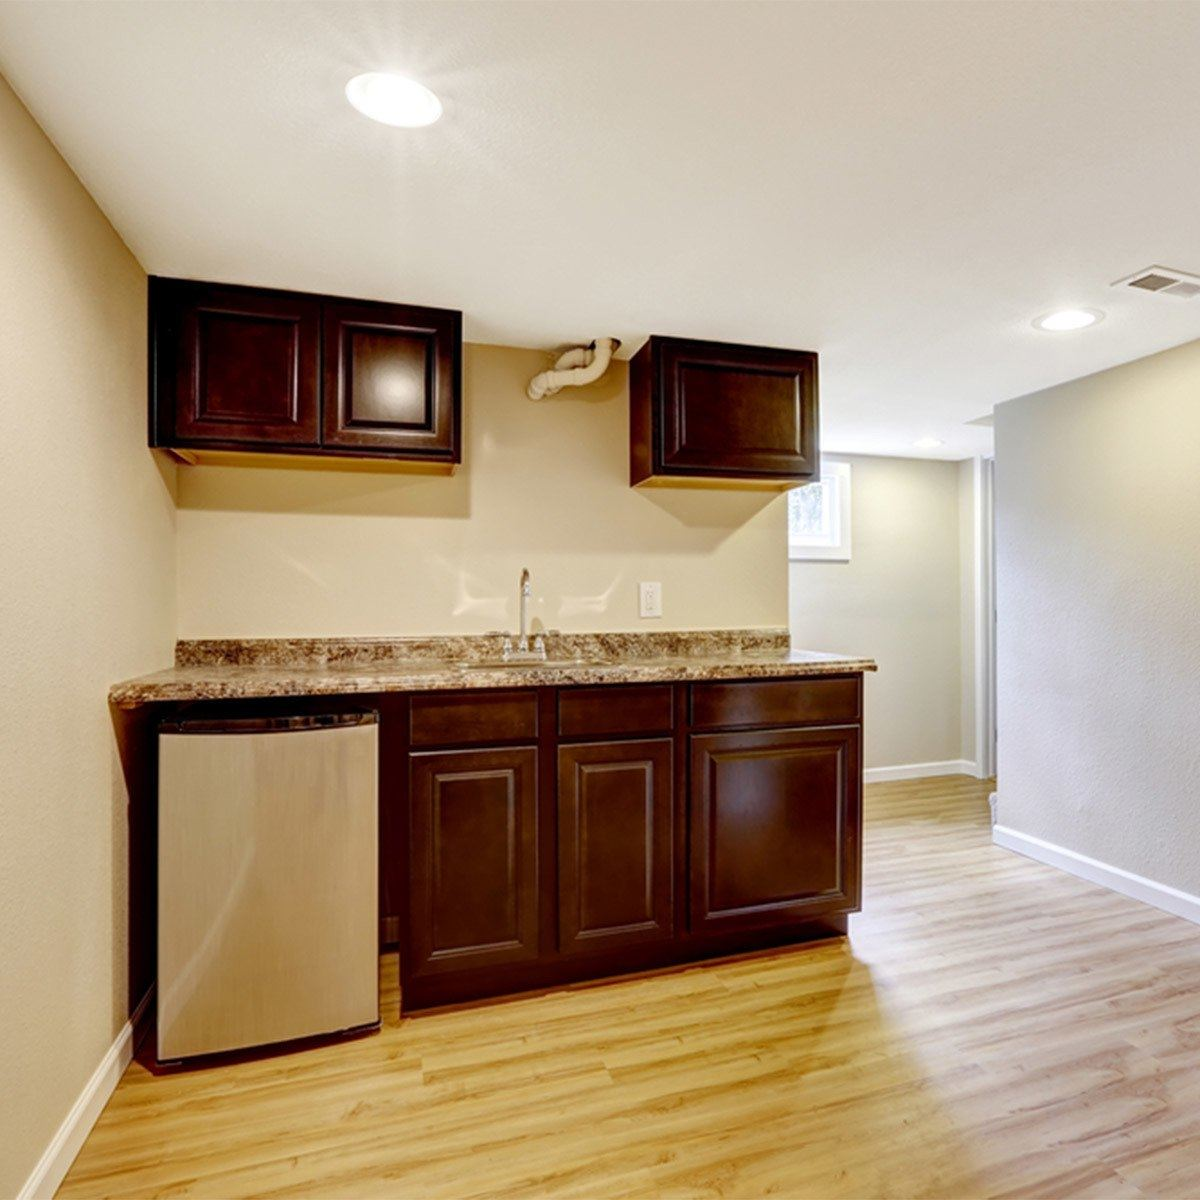 Full Size of Kitchen Cabinets Online Kitchenaid Hand Mixer Lowes Basement Support Beam Cover Ideas Pretty